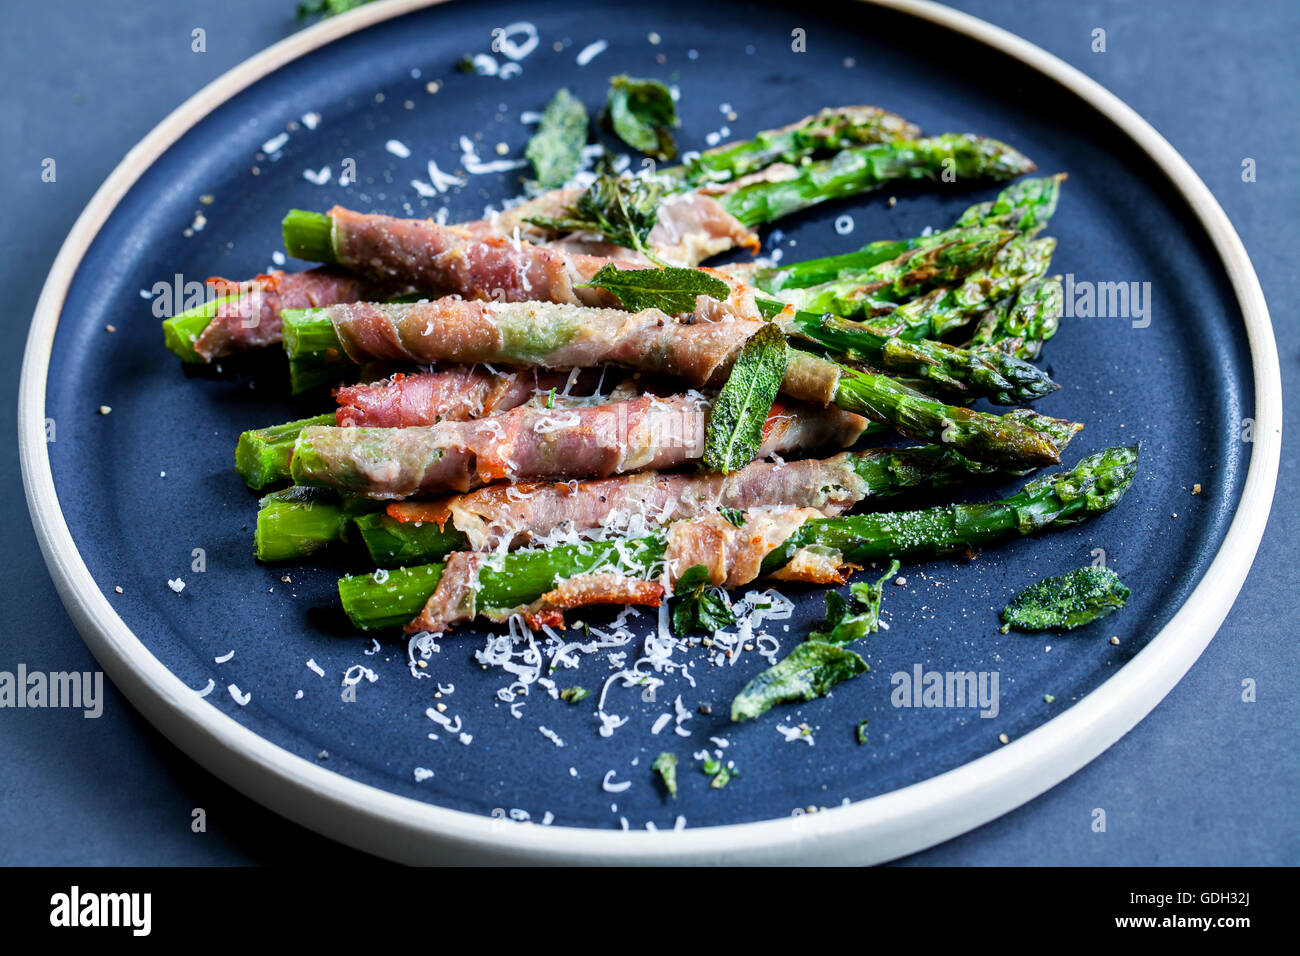 Grilled asparagus wrapped in Parma ham with parmesan, sage and thyme - Stock Image